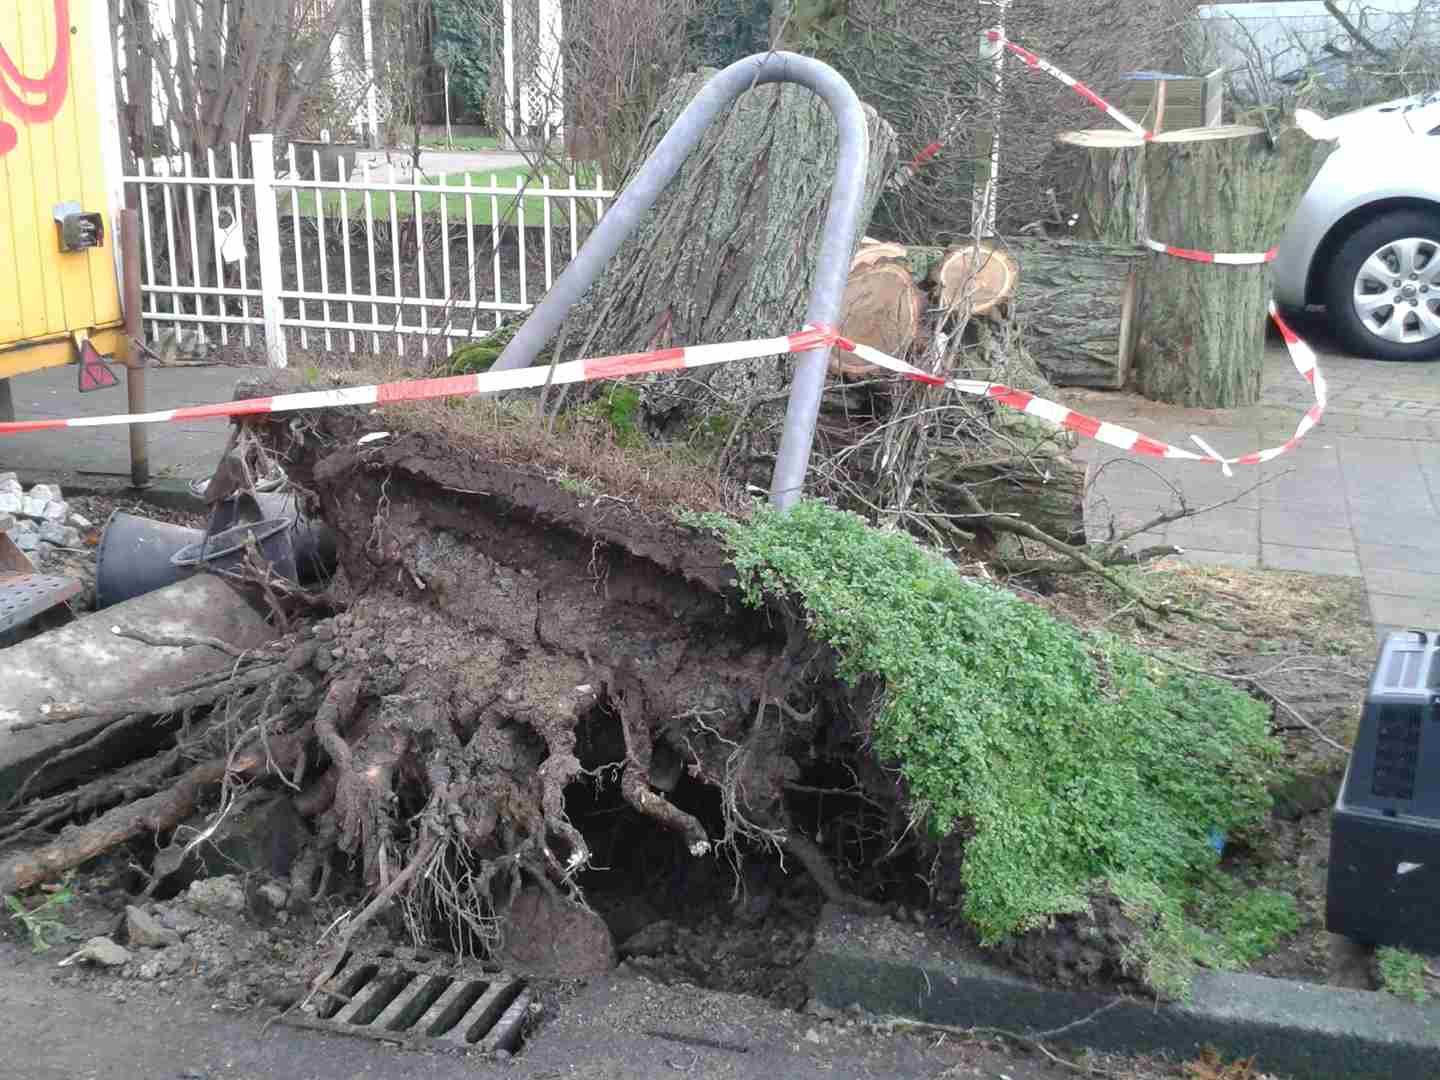 Sturm wütet in Wolbeck